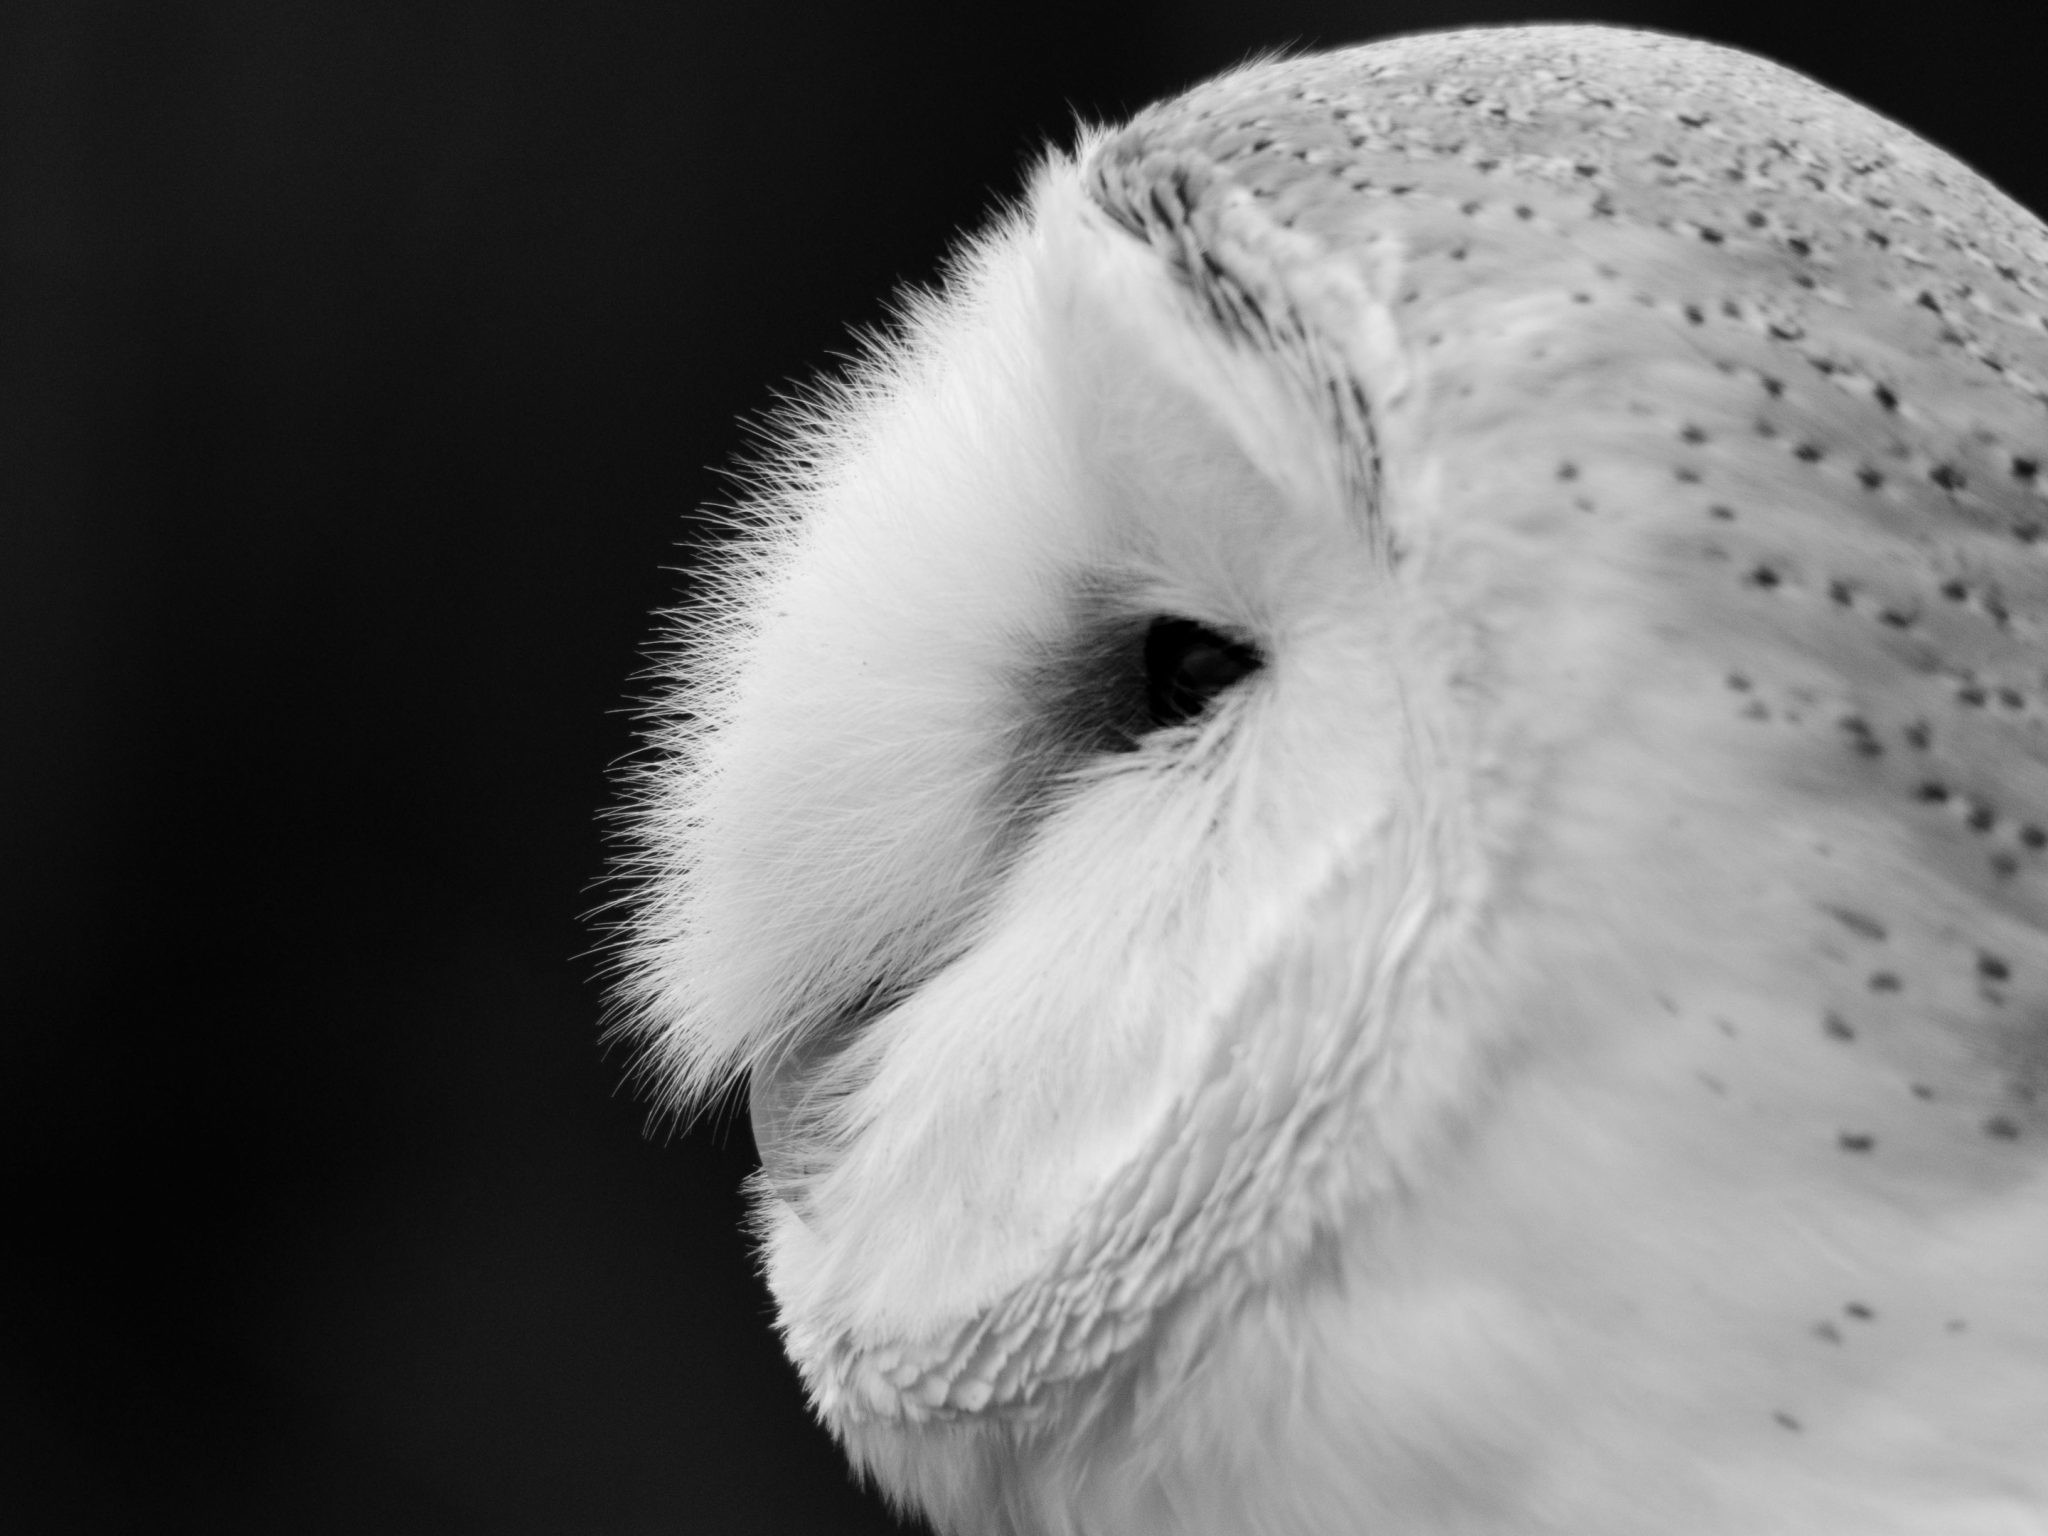 1920x1080 3D Black And White Owl   HD Animals and Birds Wallpaper Free Download .